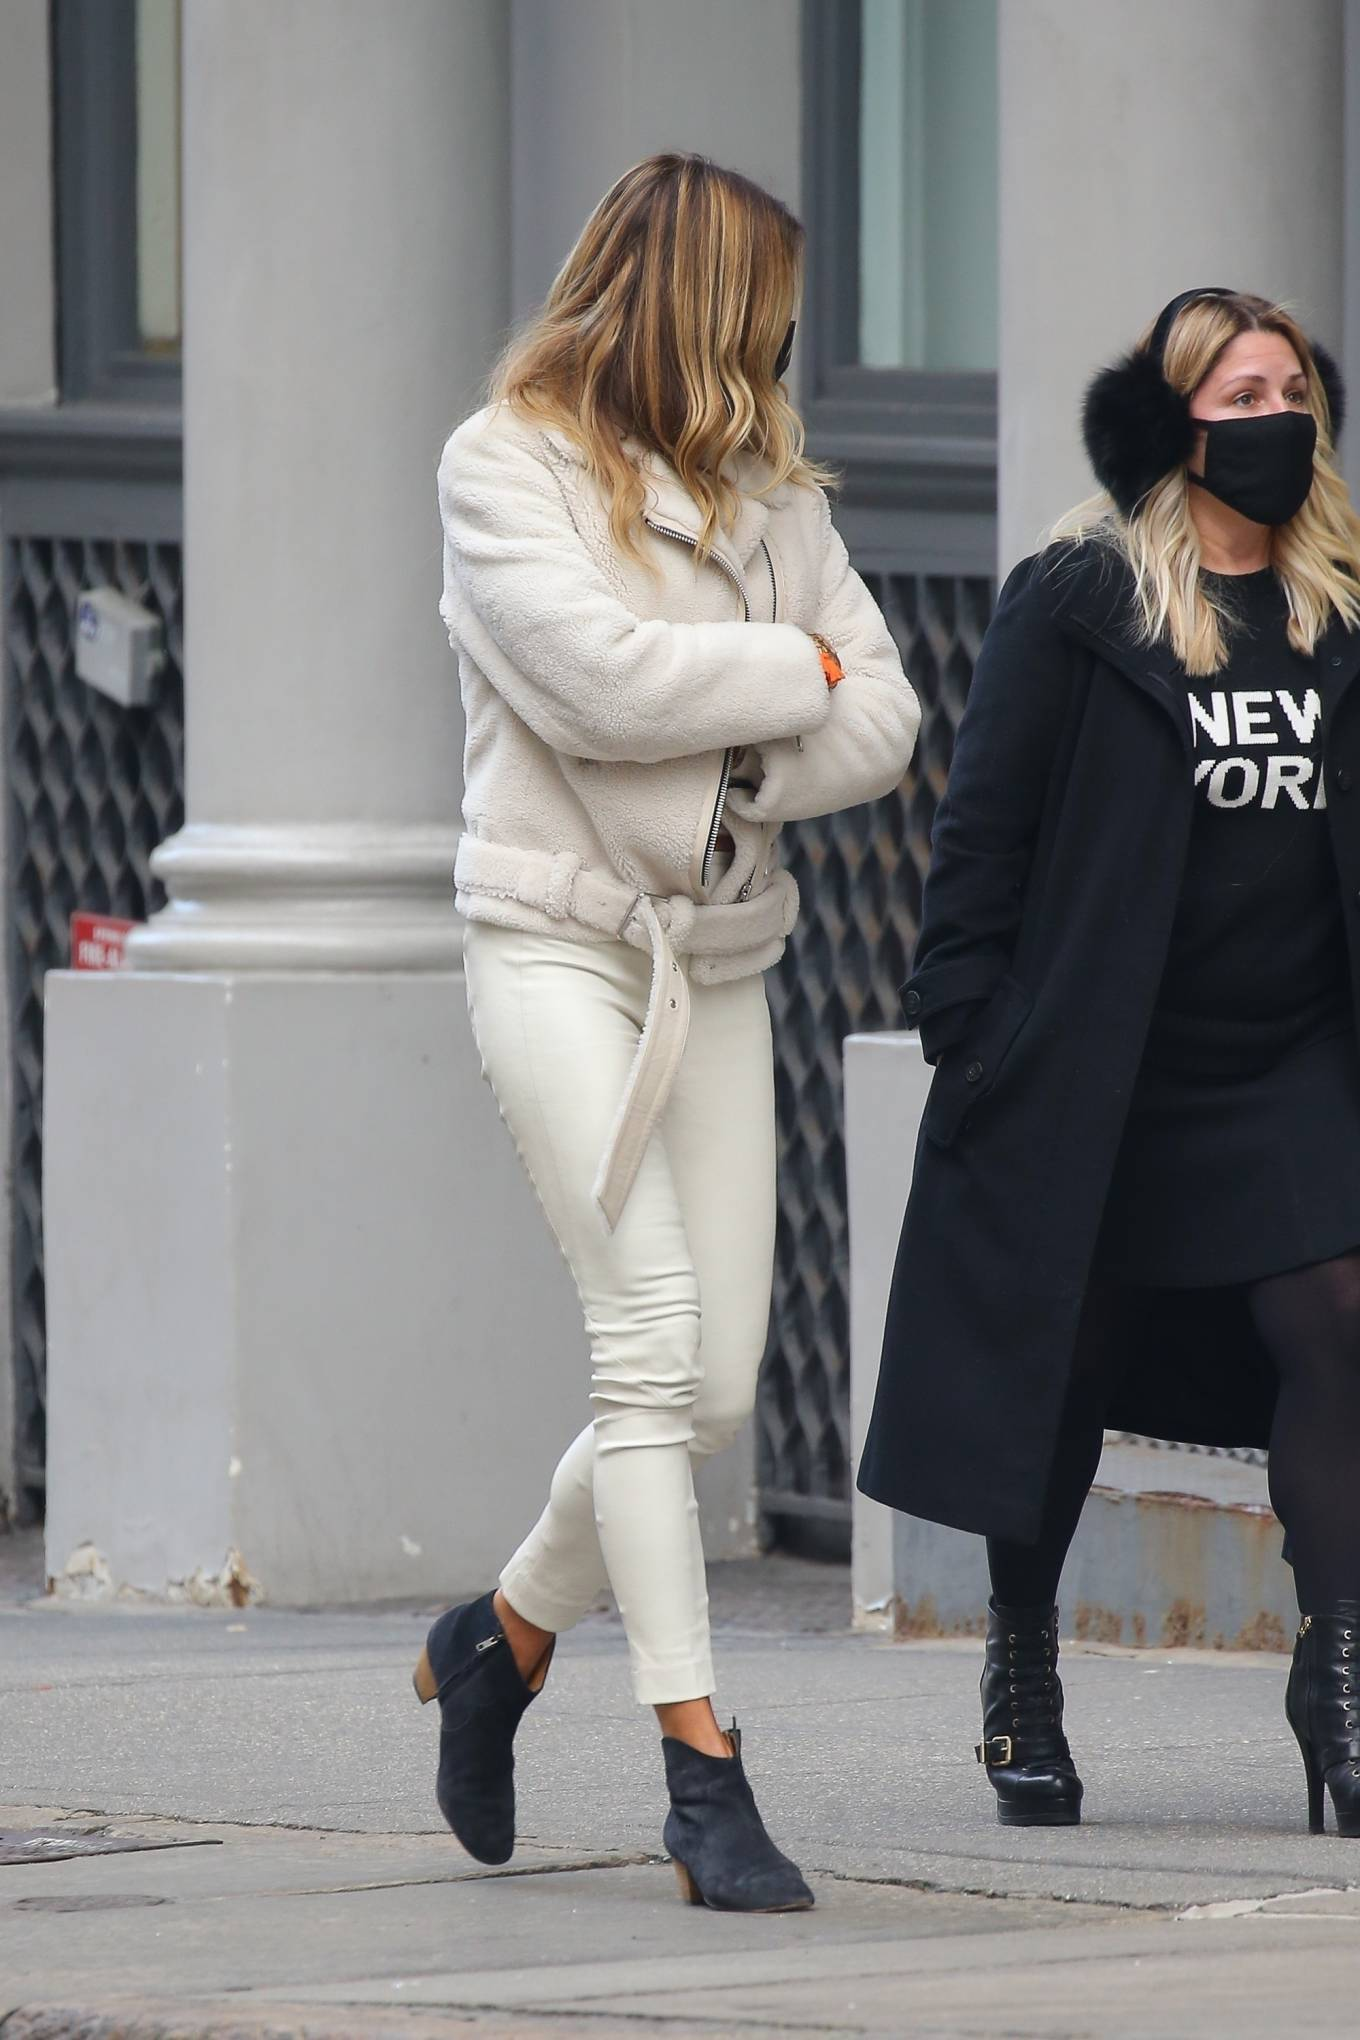 Kelly Bensimon - Out for a stroll with friends in New York City